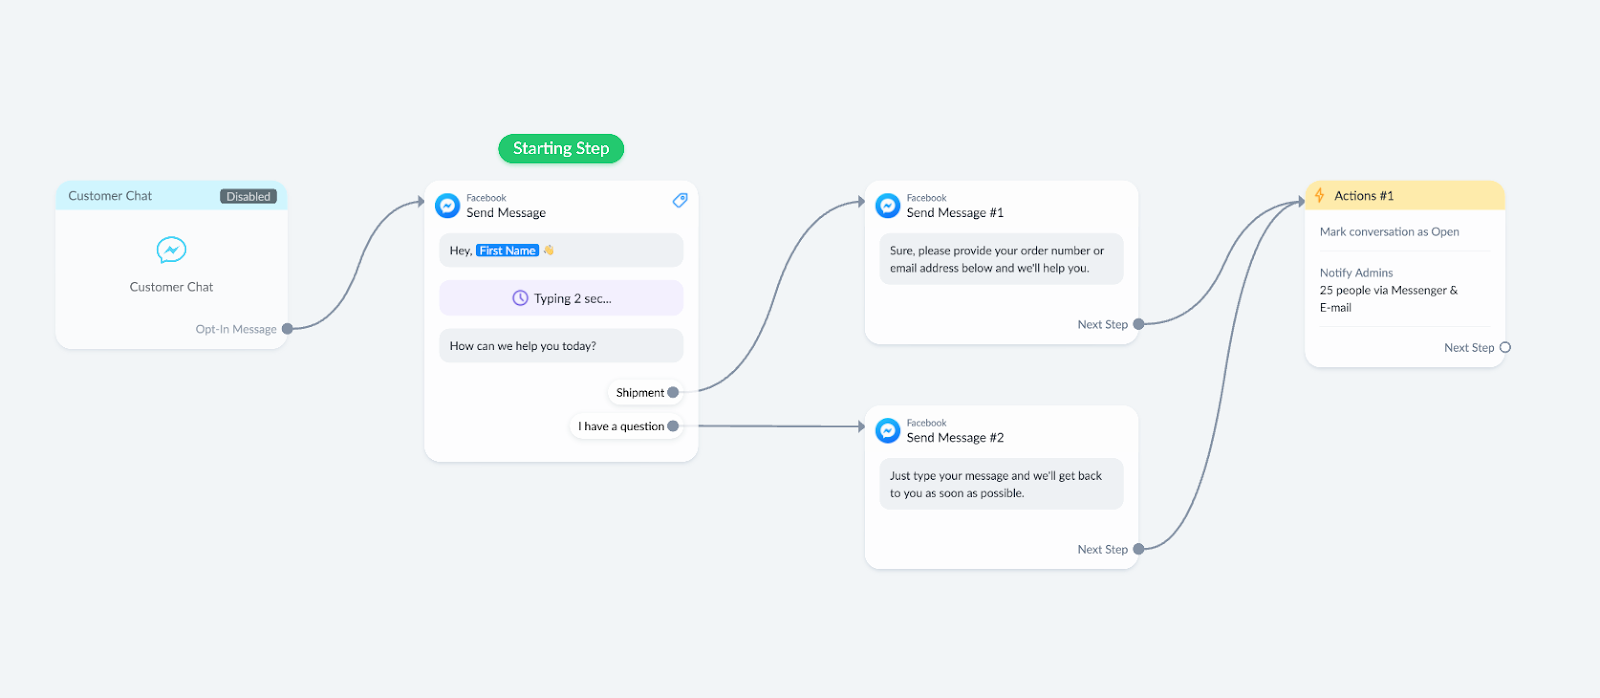 Customer Chat bot flow